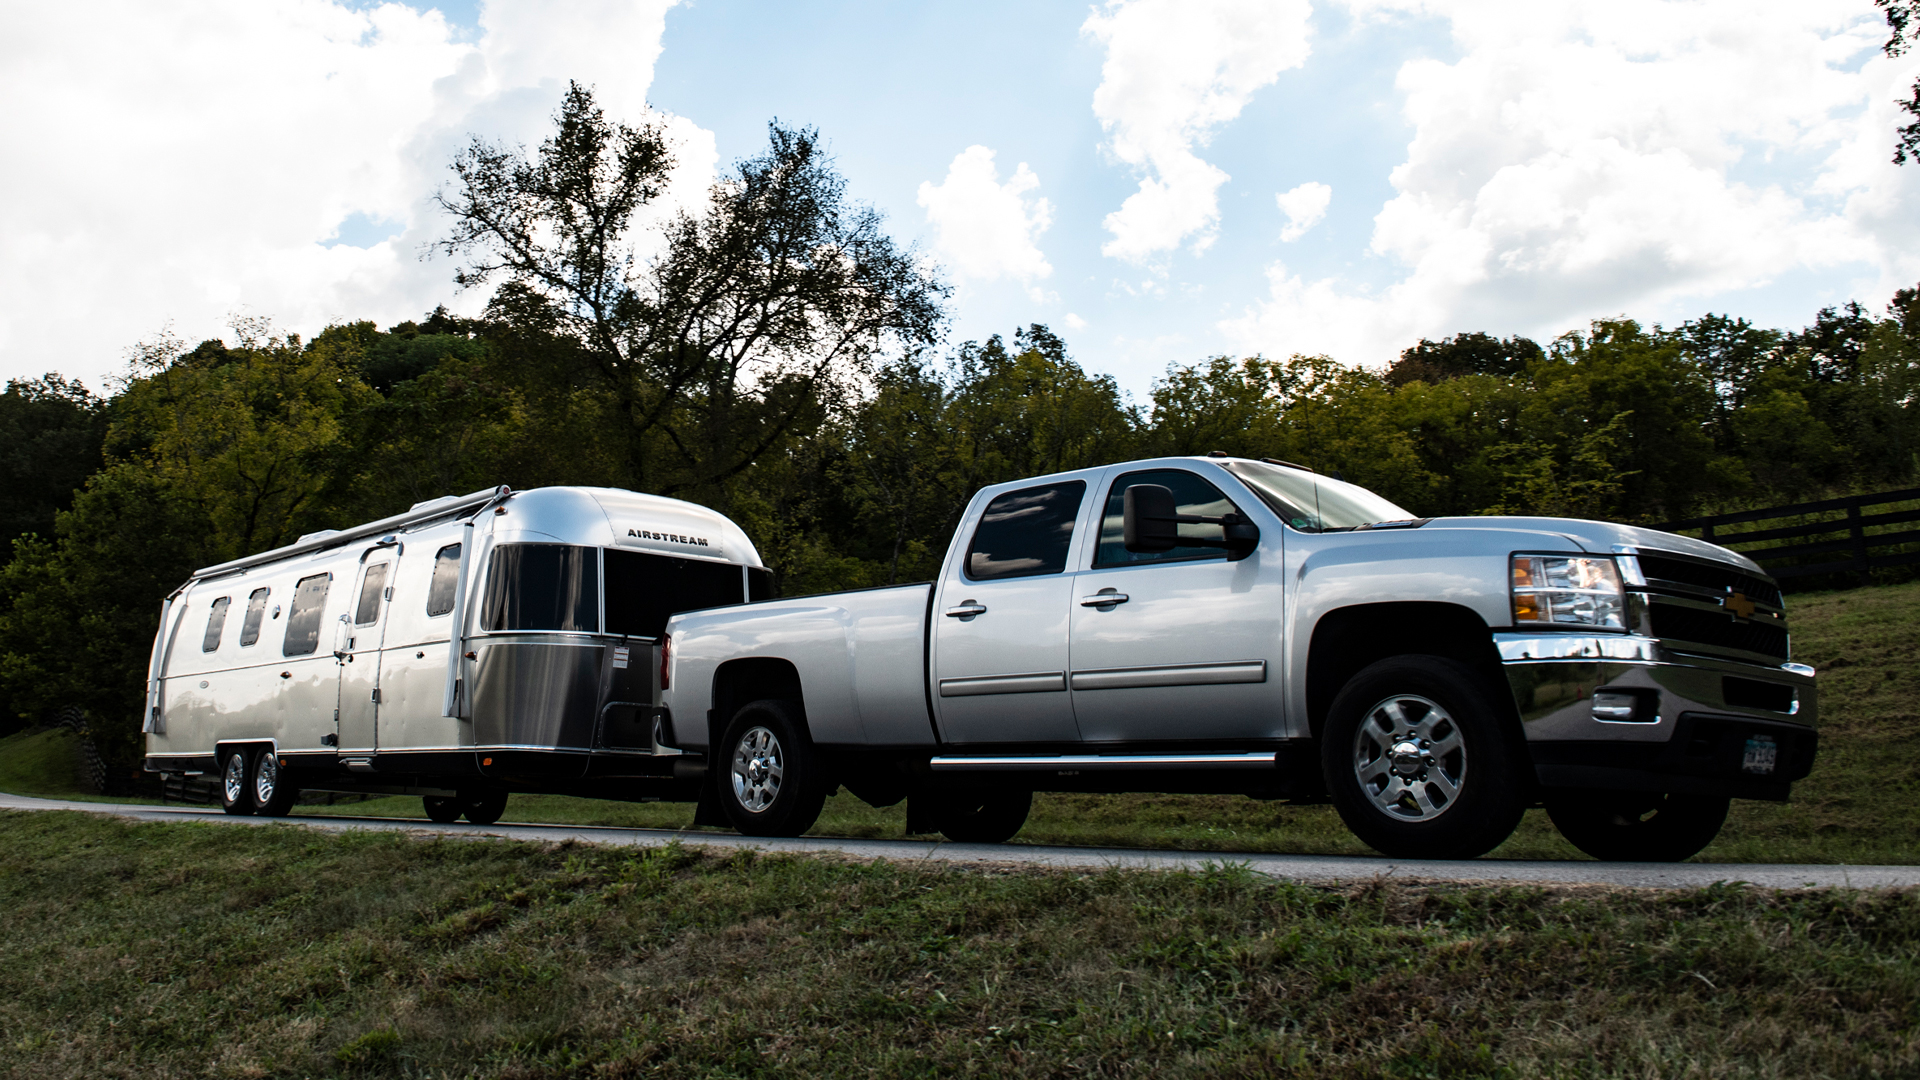 Chevy-truck-towing-an-Airstream-trailer